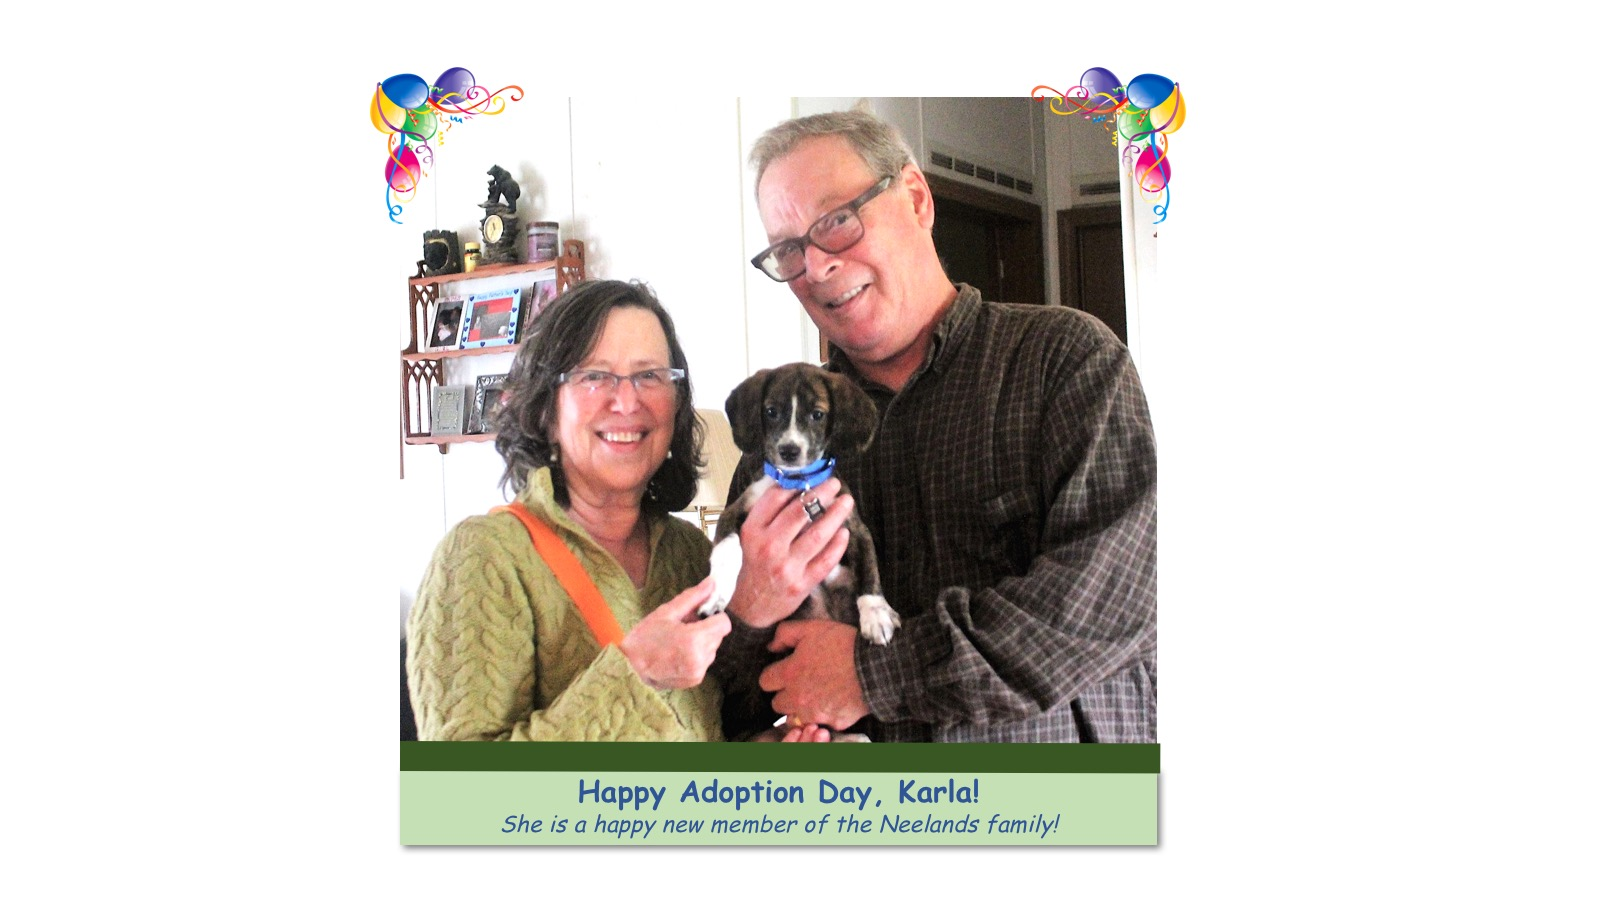 Karla_Adoption_photo.jpg